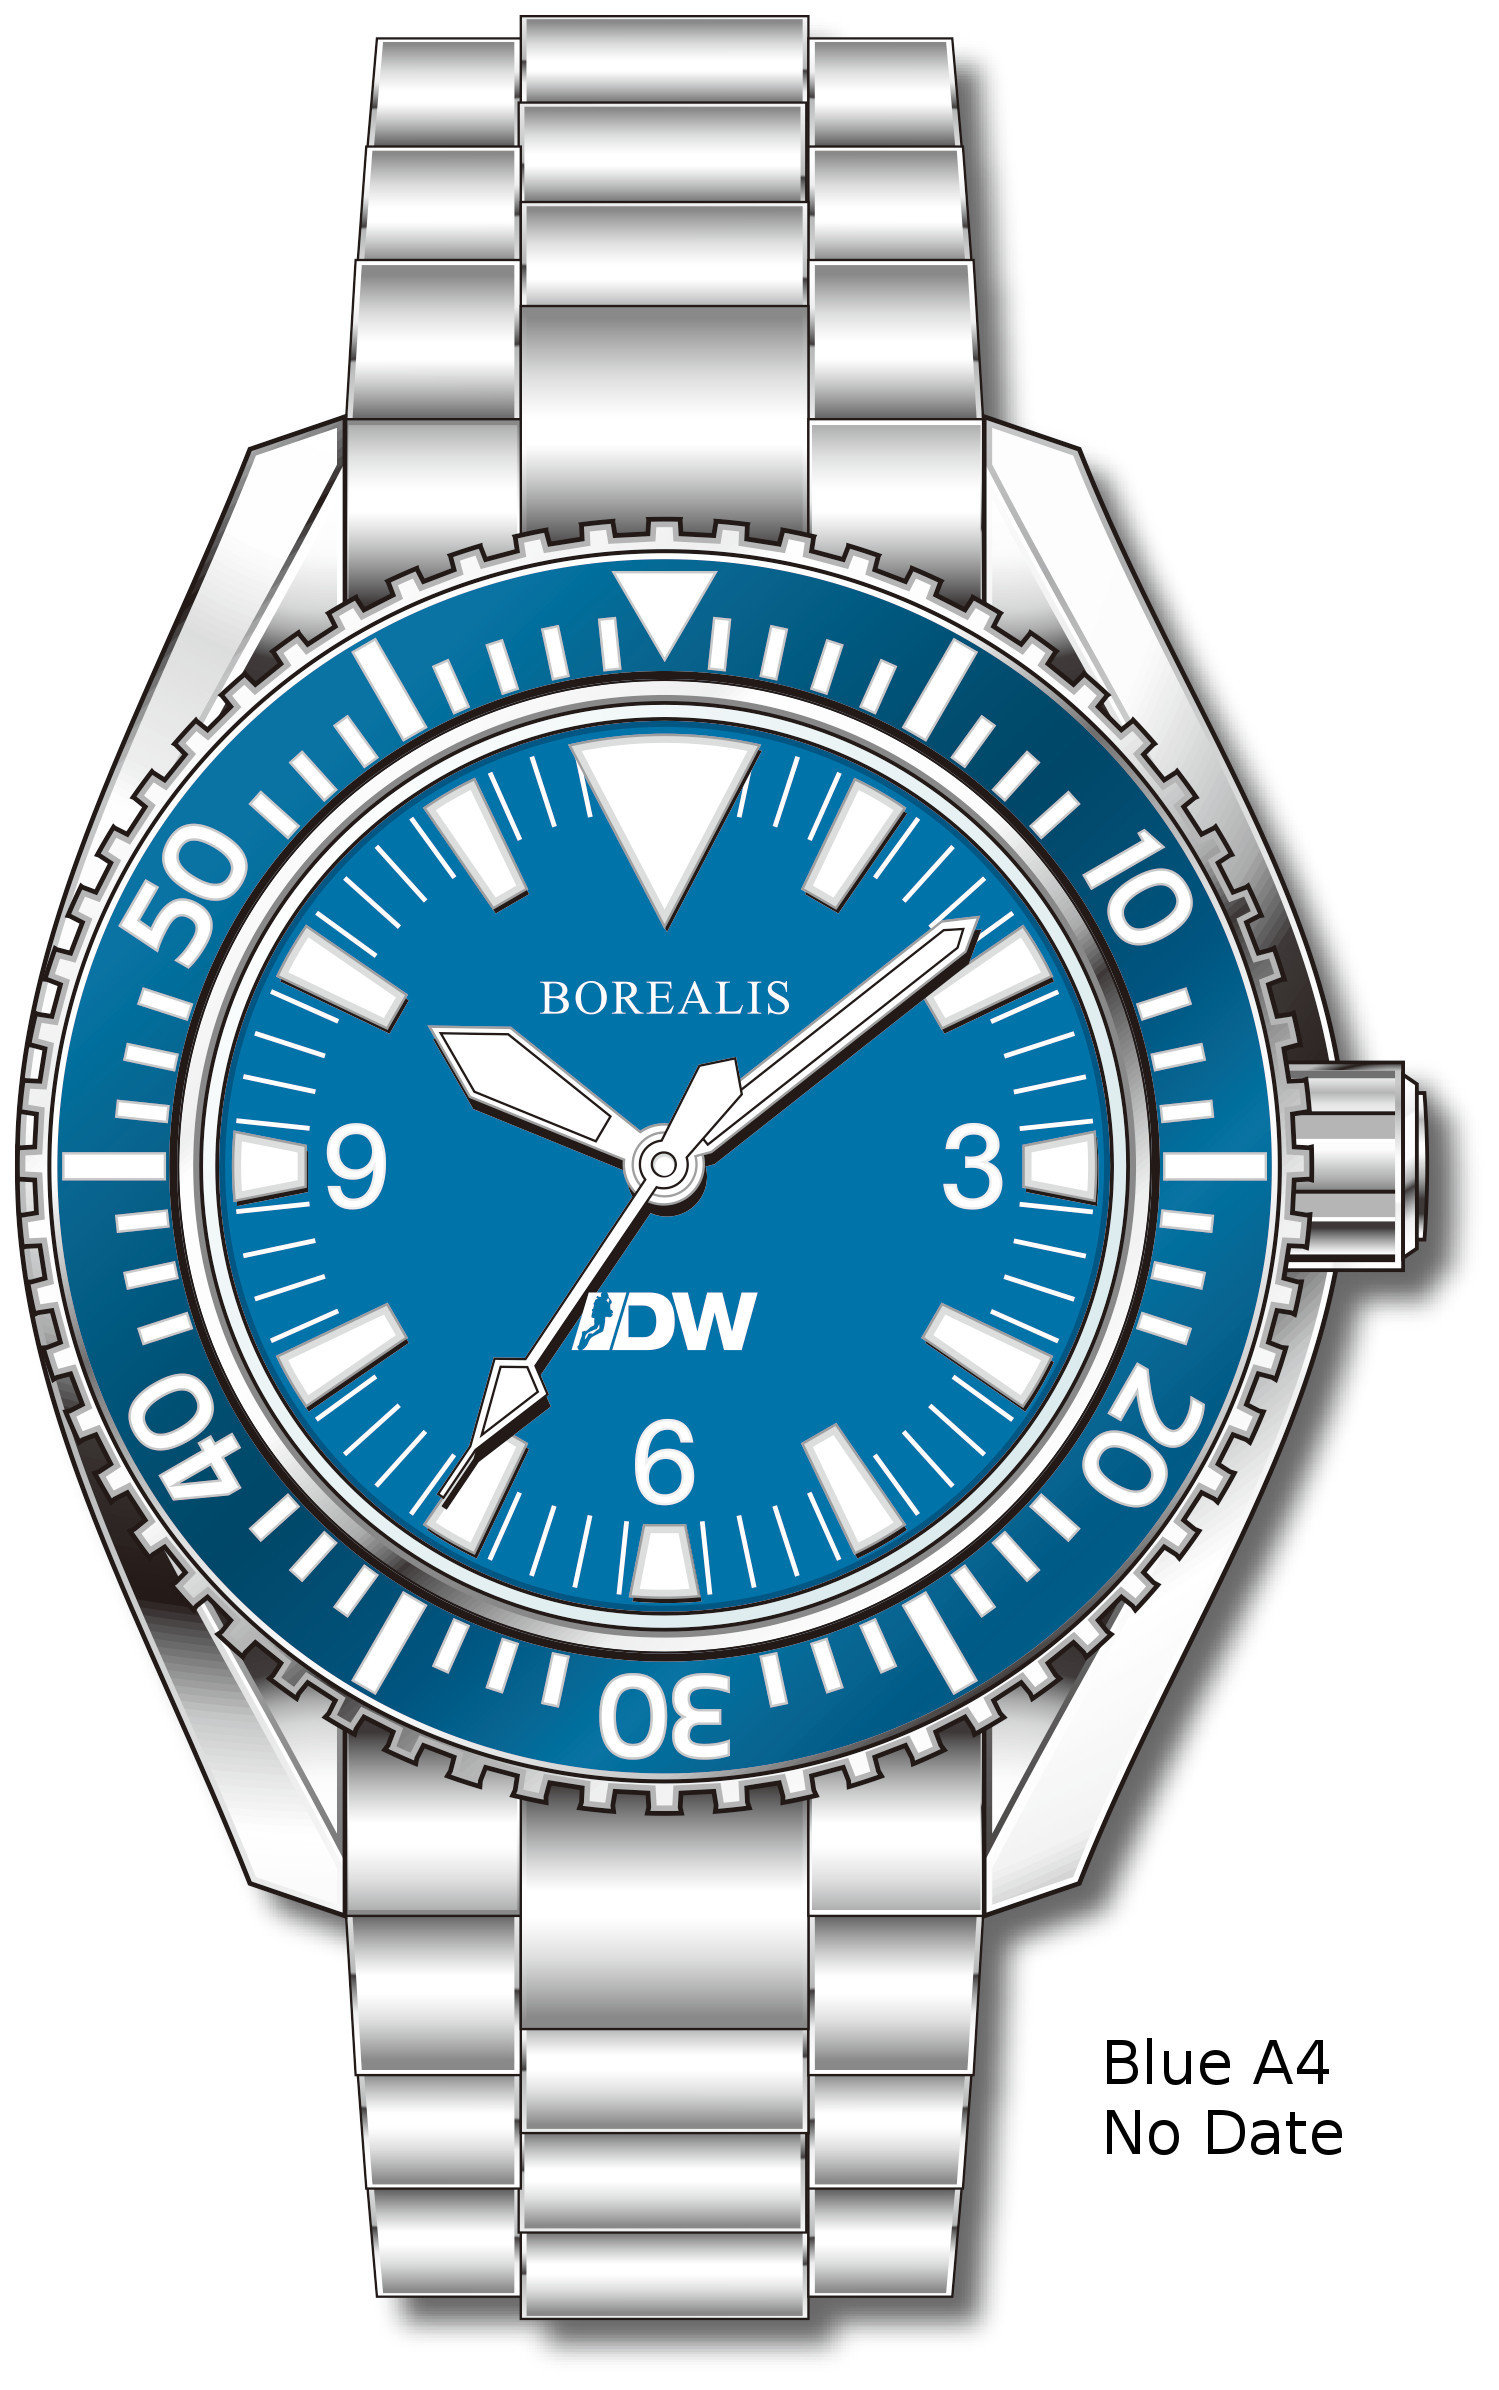 Pre-Order Borealis Estoril 300 for Diver's Watches Facebook Group Blue Dial Big Triangle No Date Blue A4 EDWFBGBLUEA4NDT